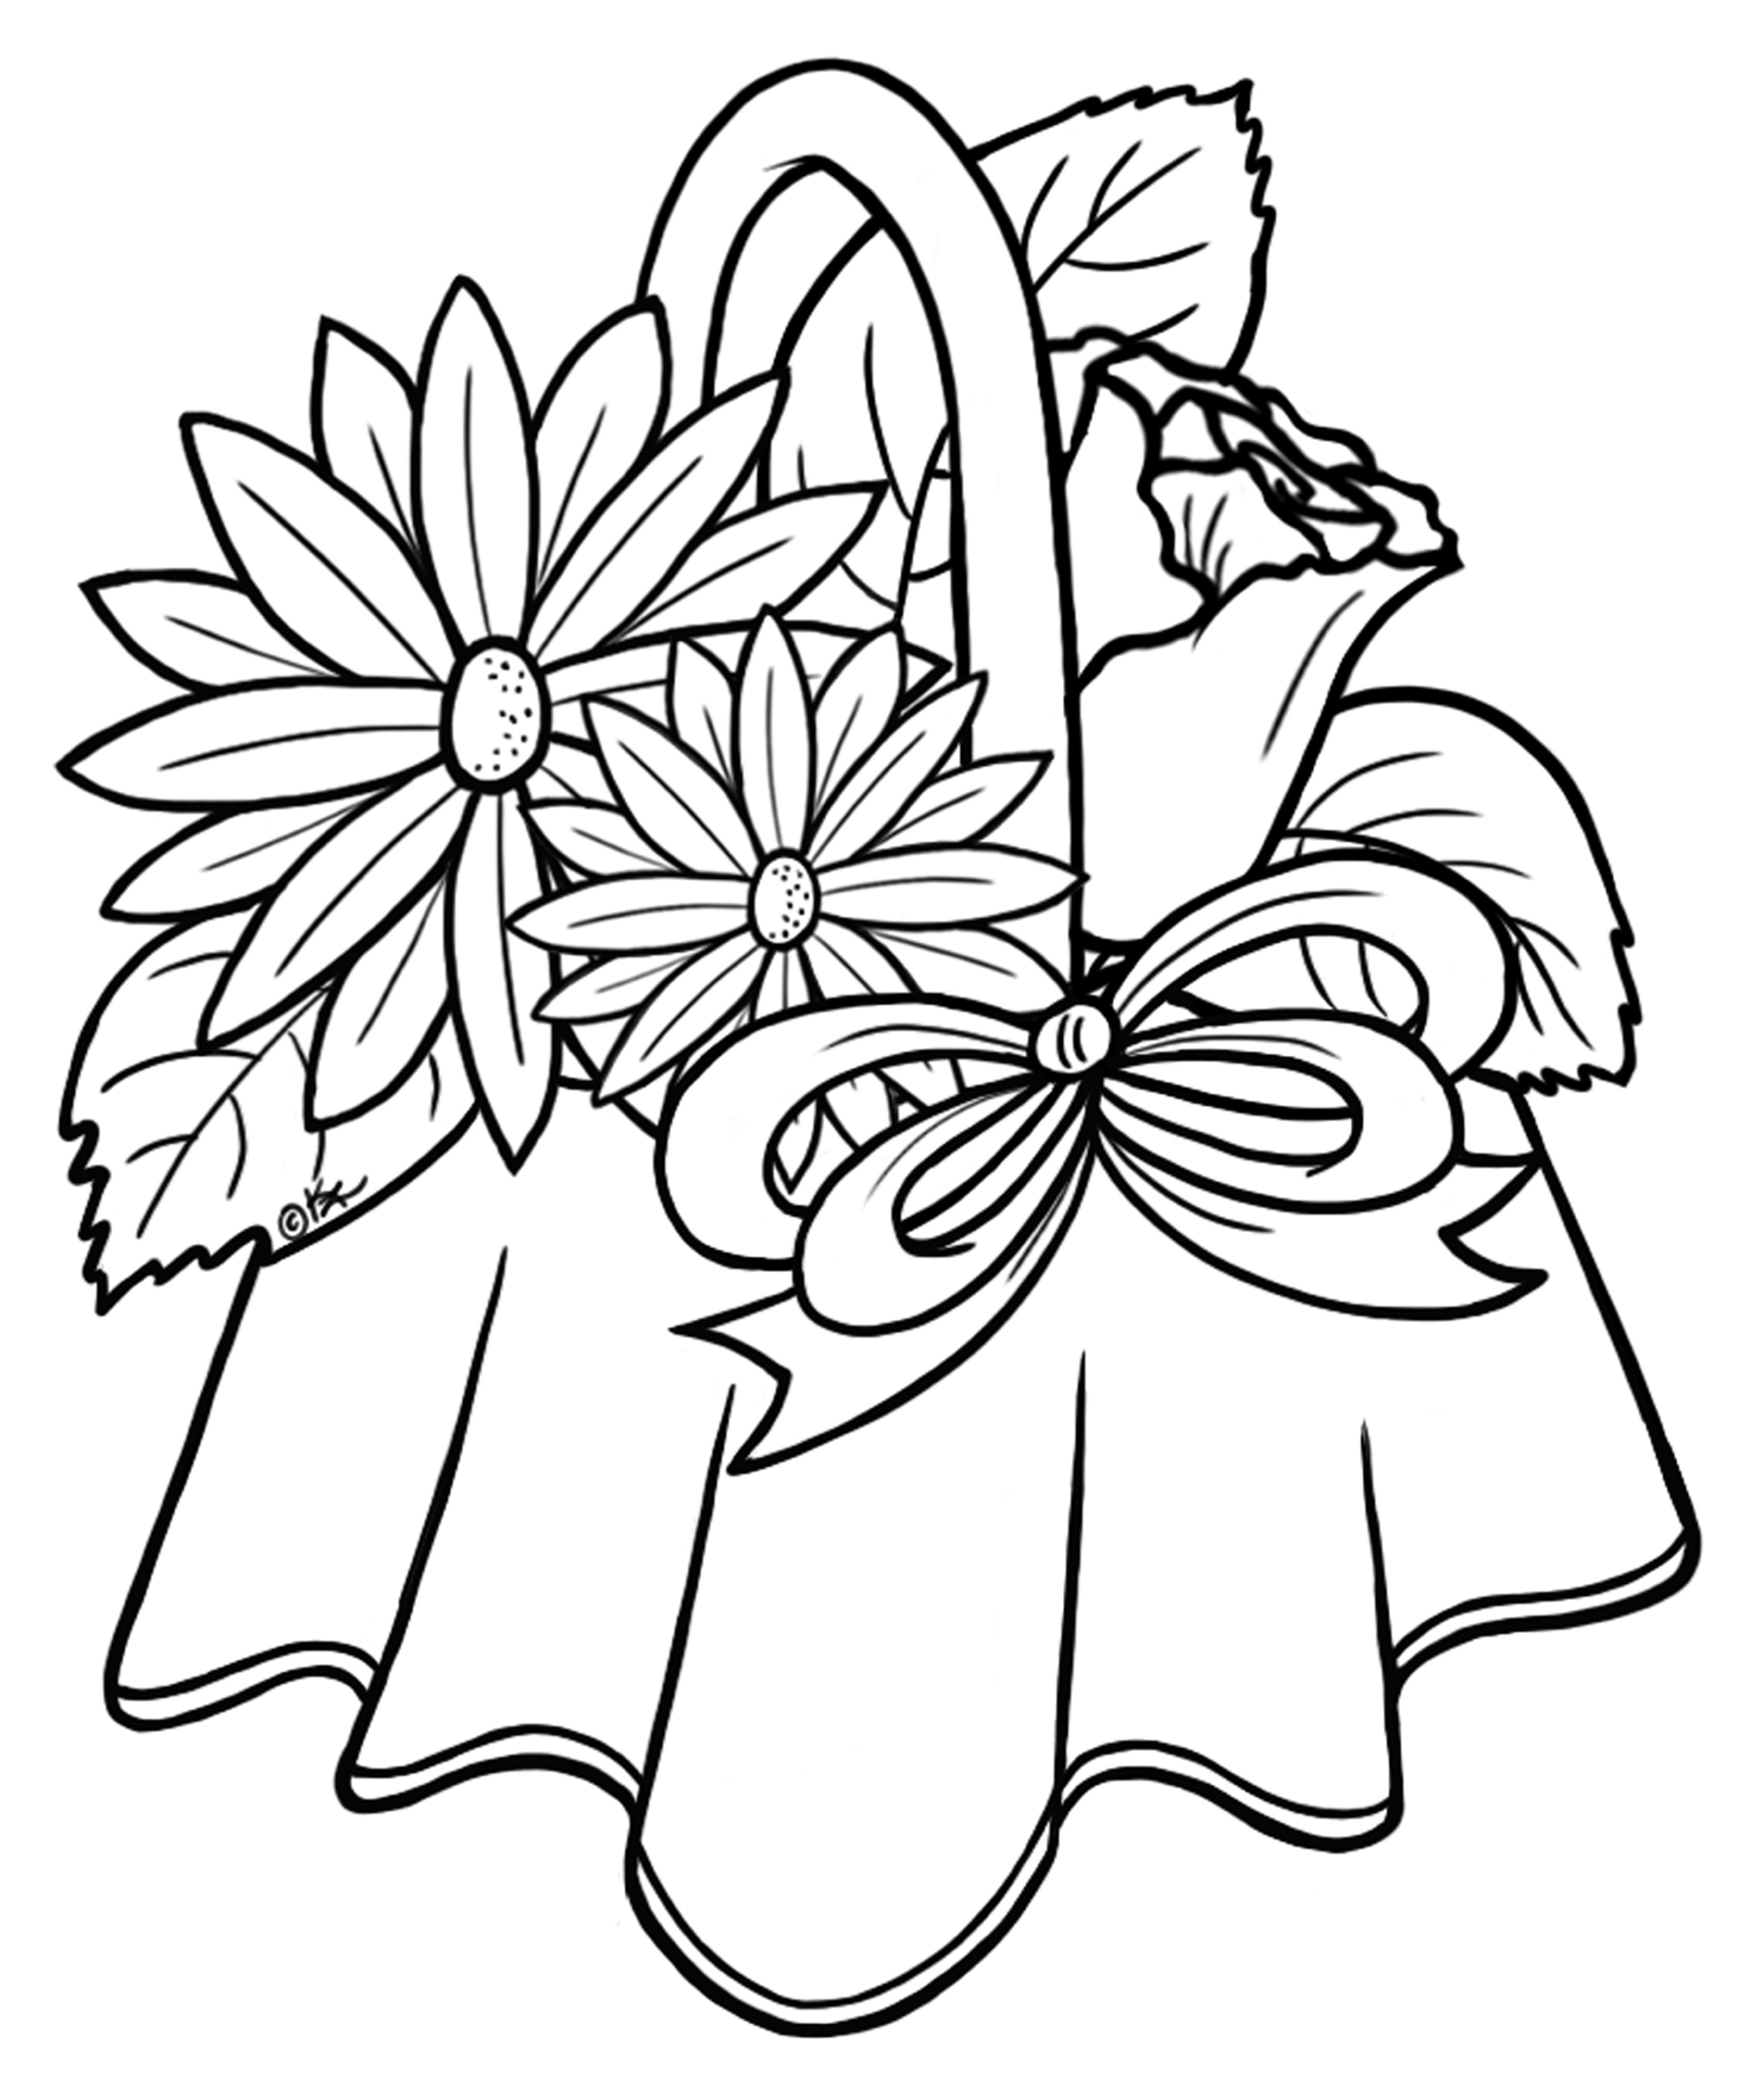 how to draw bouquet of flowers how to draw a bouquet of flowers step by step drawing draw flowers bouquet how of to